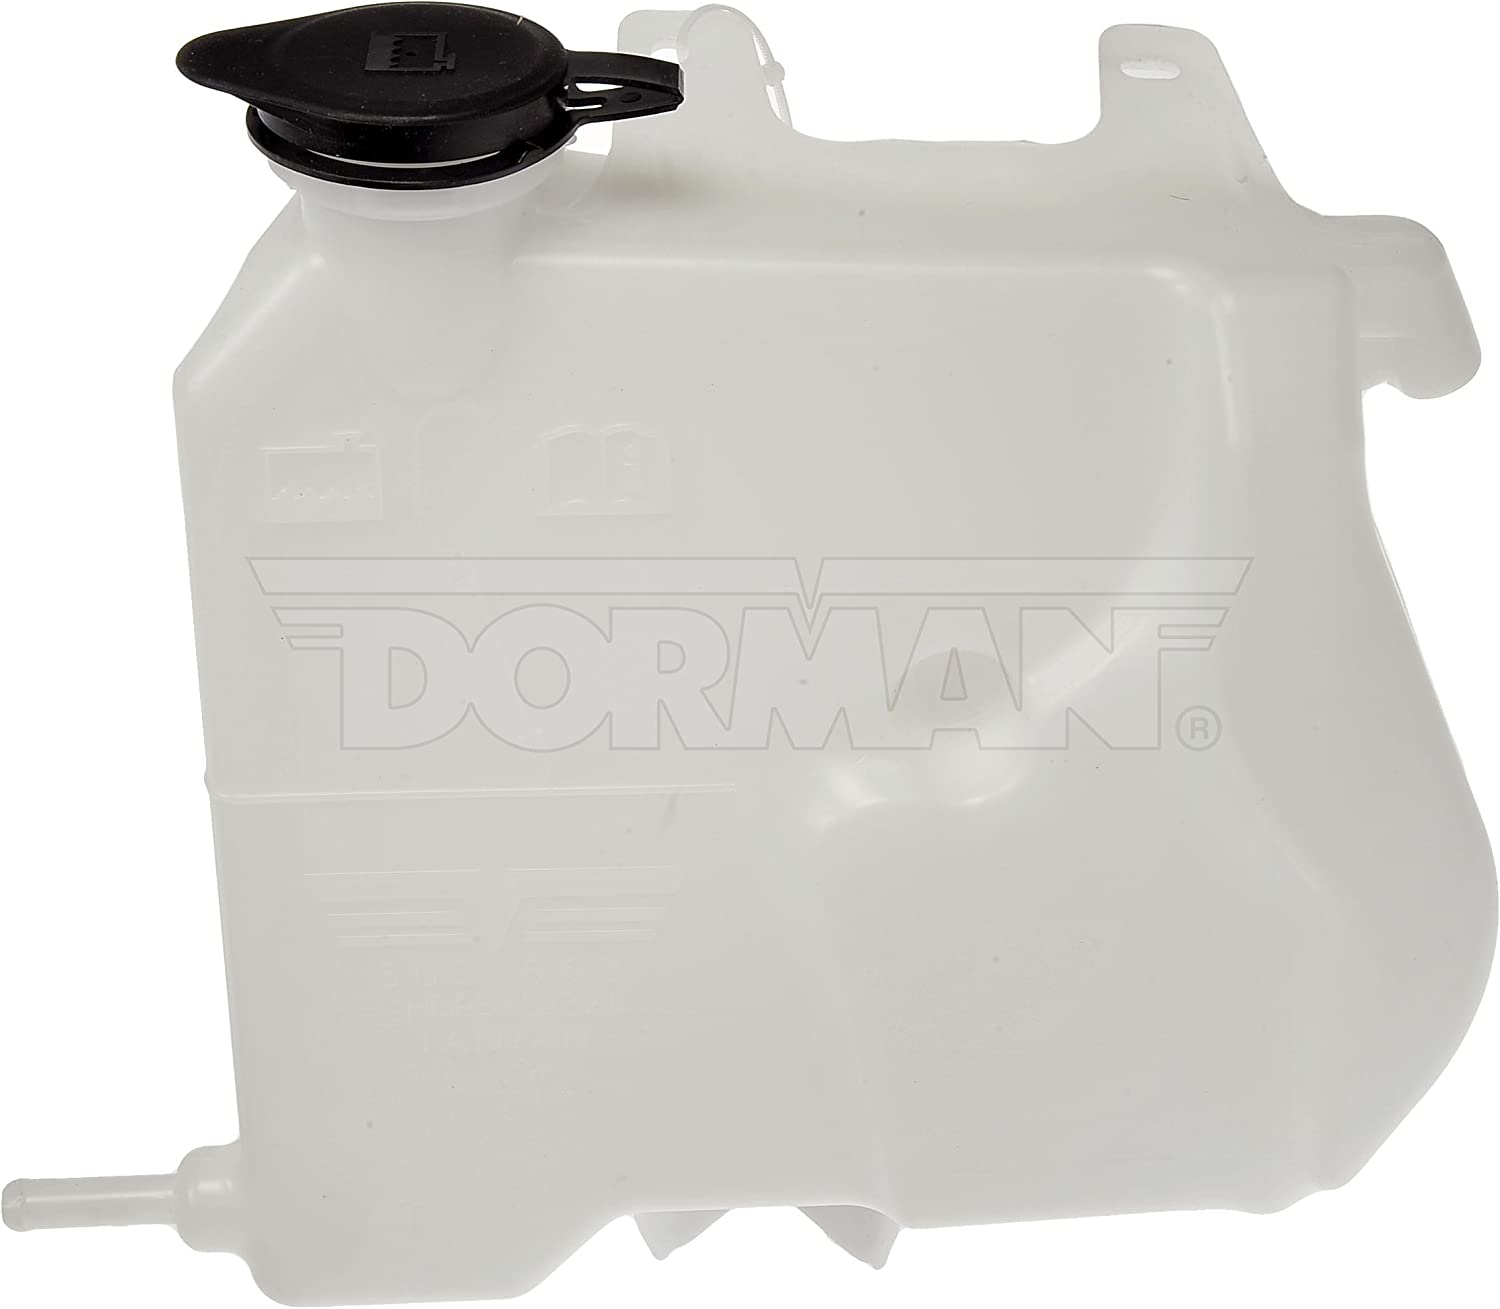 Dorman Coolant Reservoir 603-081